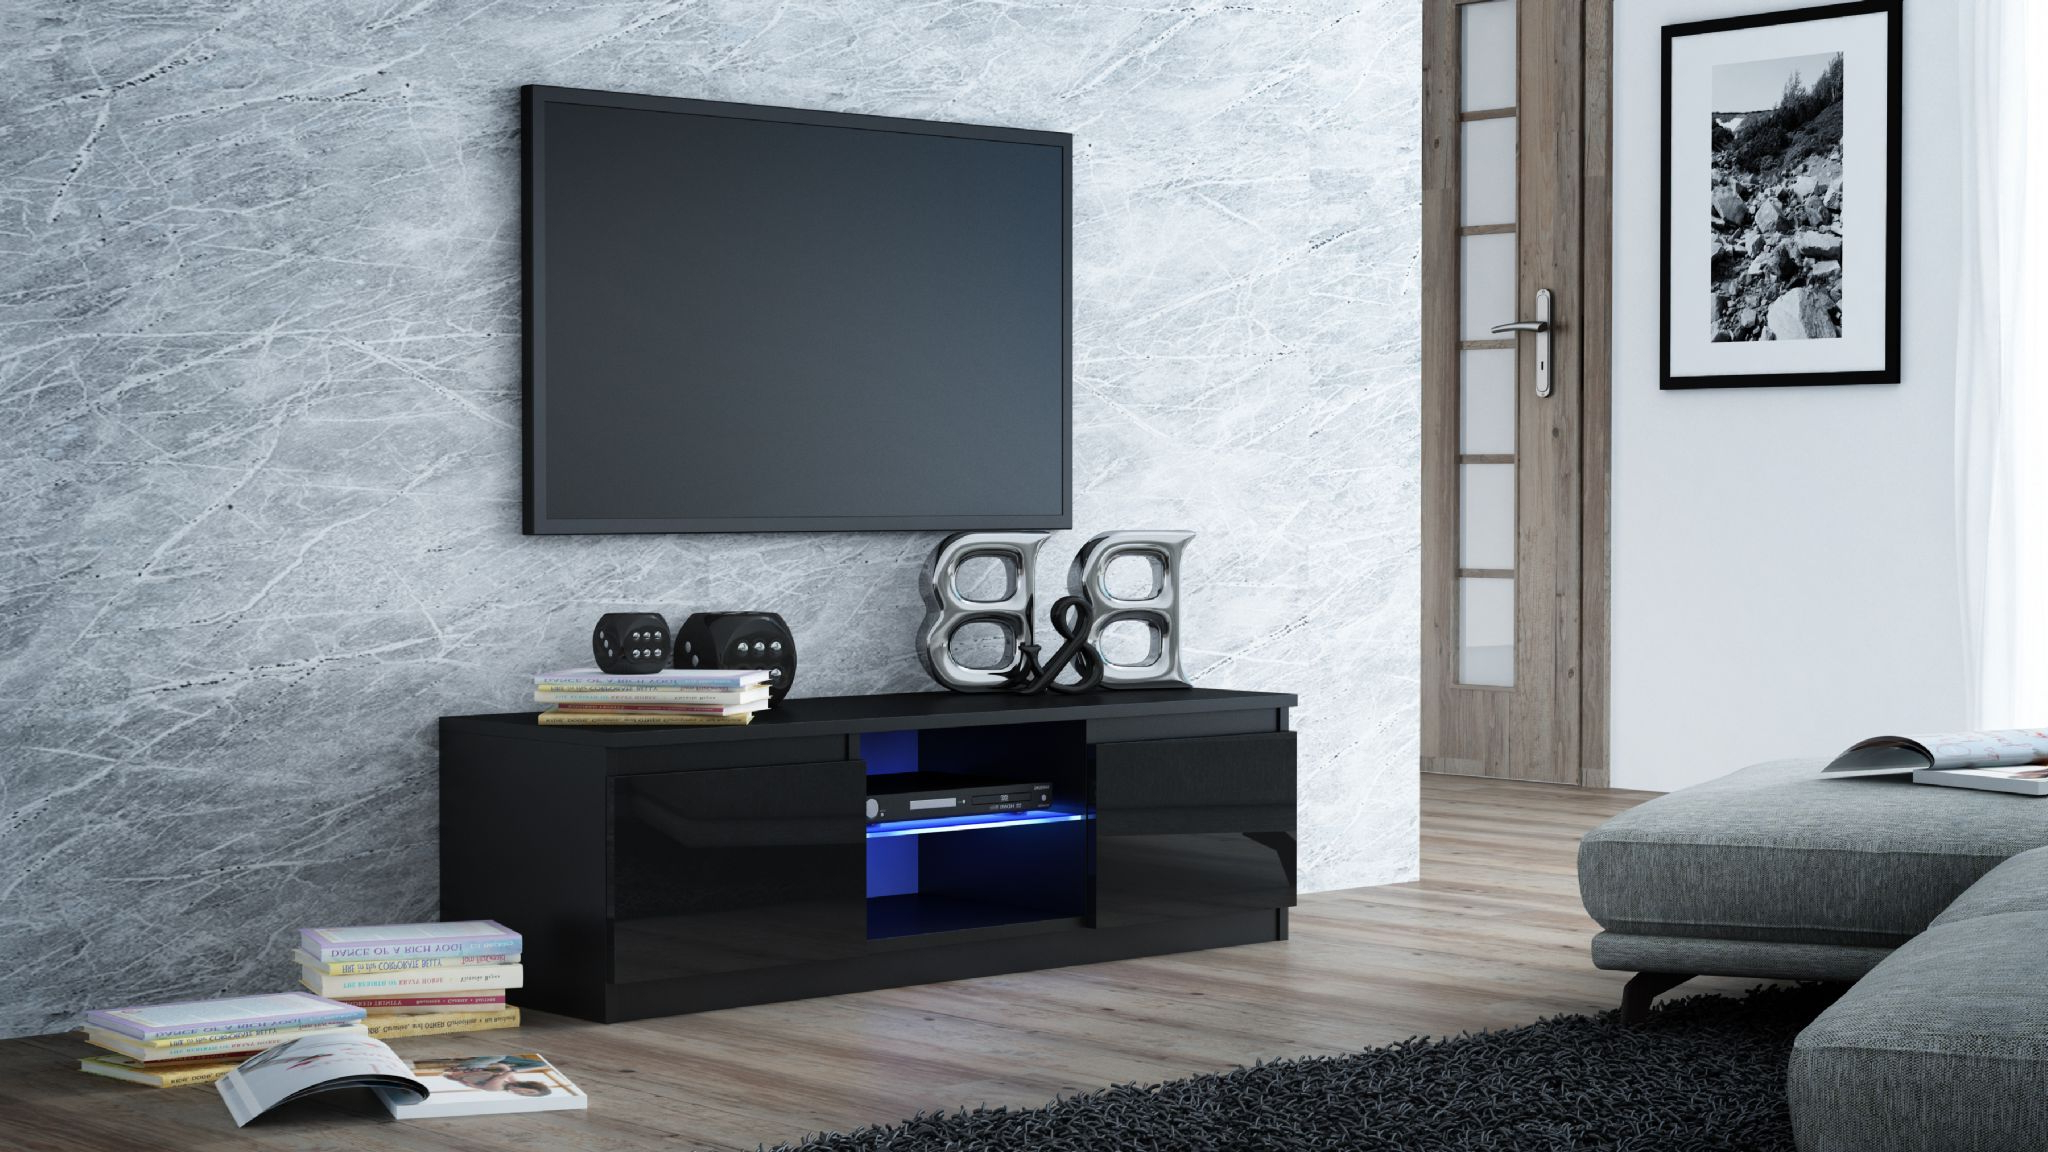 Best And Newest Milano Designer High Gloss Led Tv Stand Cabinet Black, White (View 15 of 20)